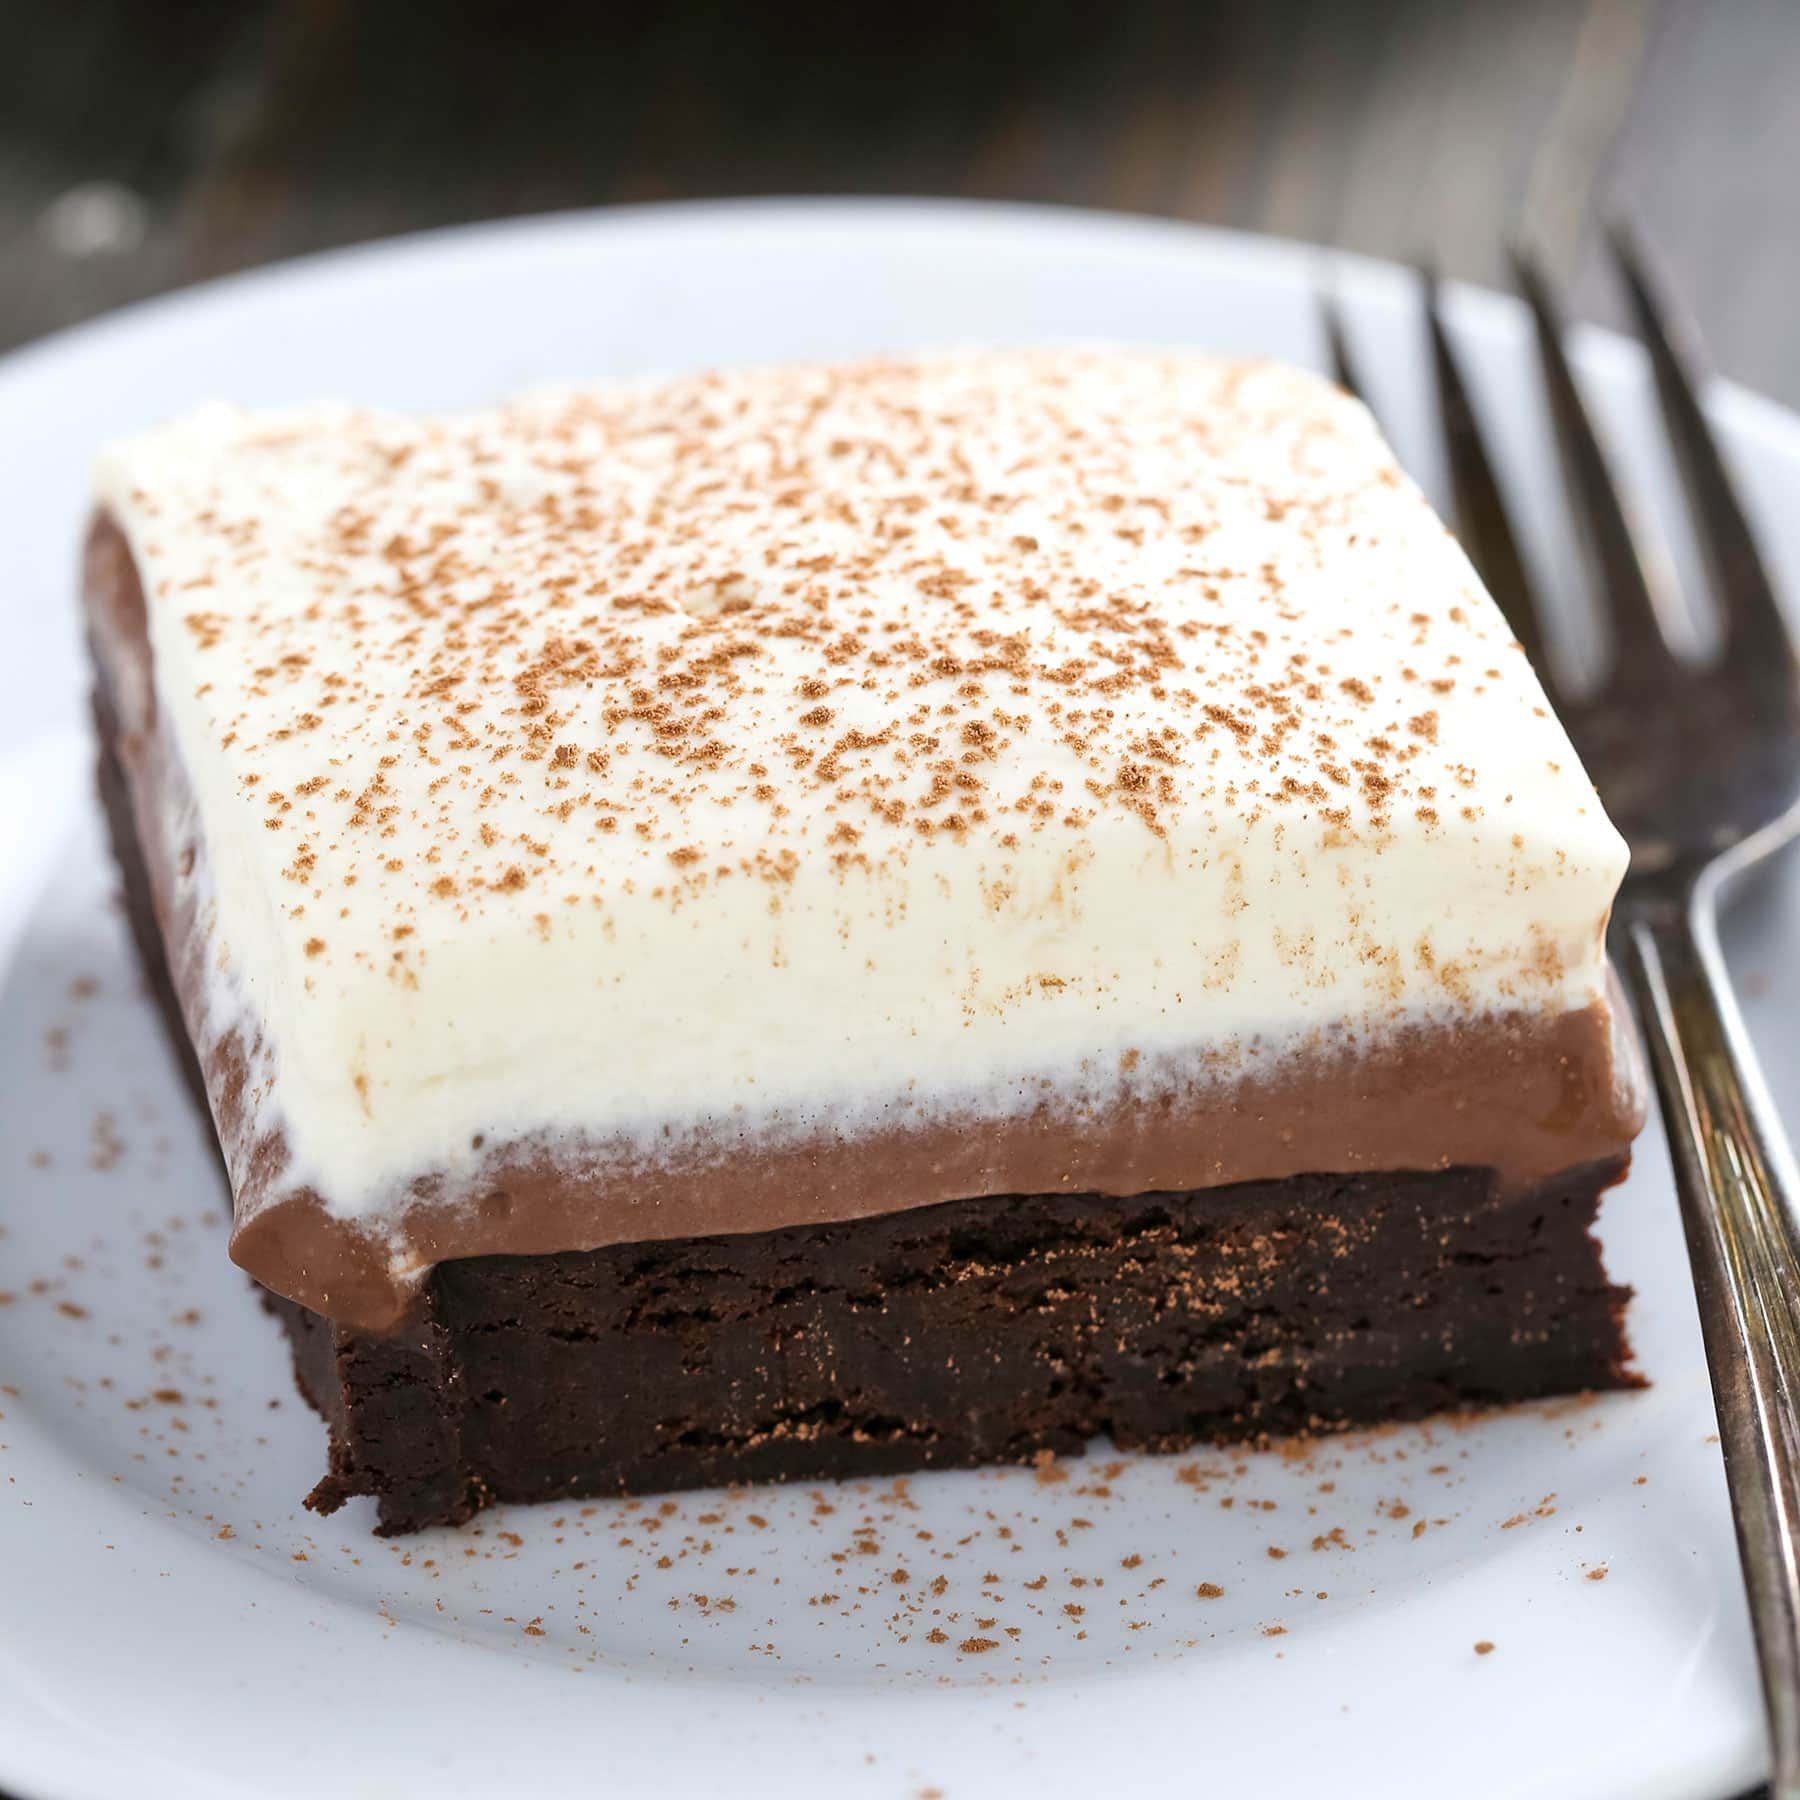 Chocolate Cream Pie Brownies have a rich fudgy brownie bottom, a layer of luscious chocolate cream pie filling, and are topped with homemade whipped cream.